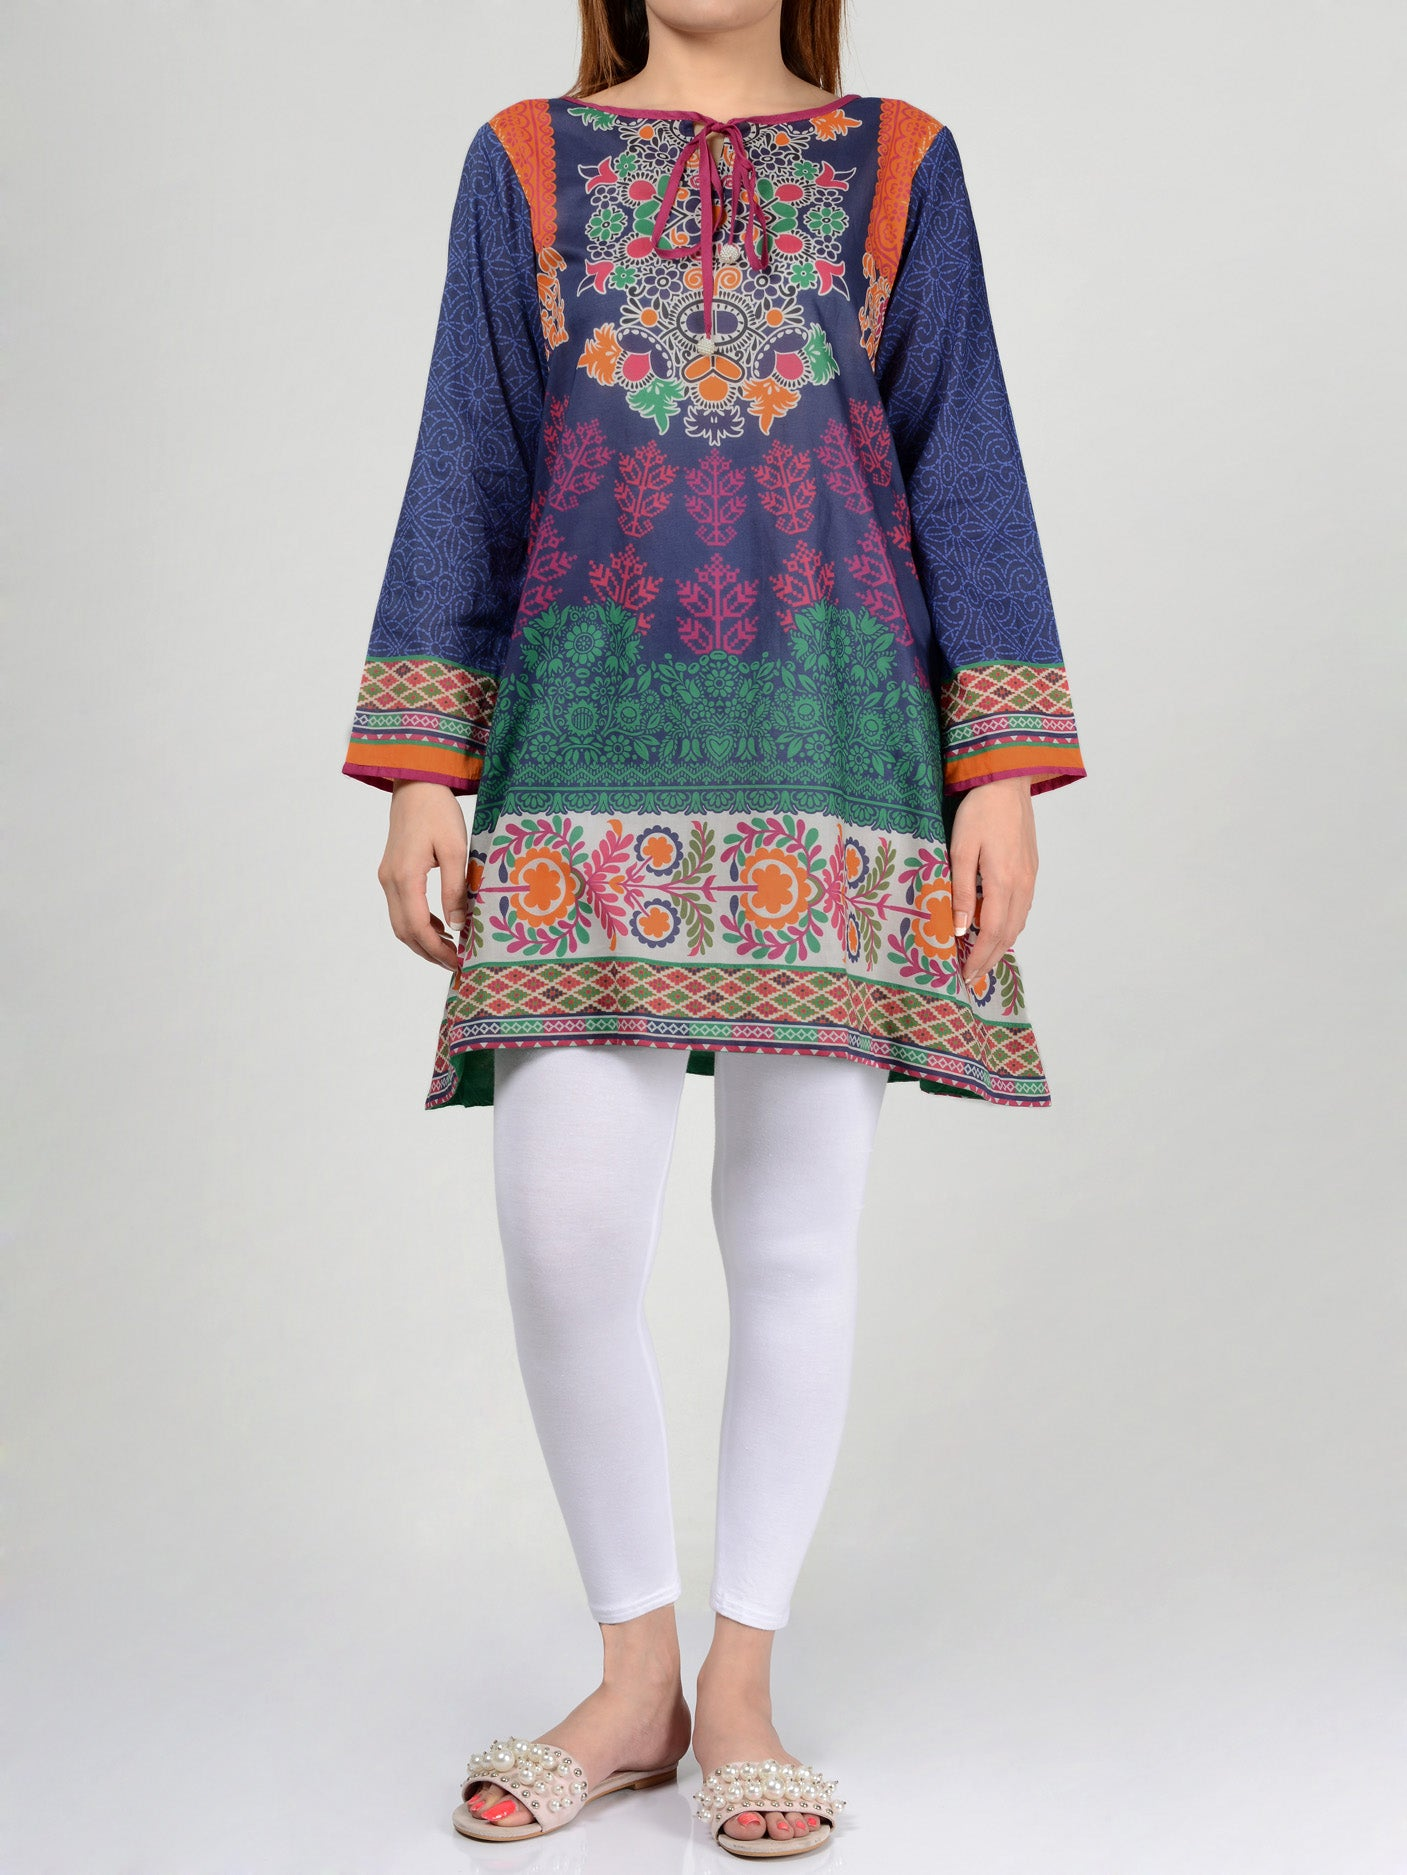 Printed Lawn Shirts Online P0116